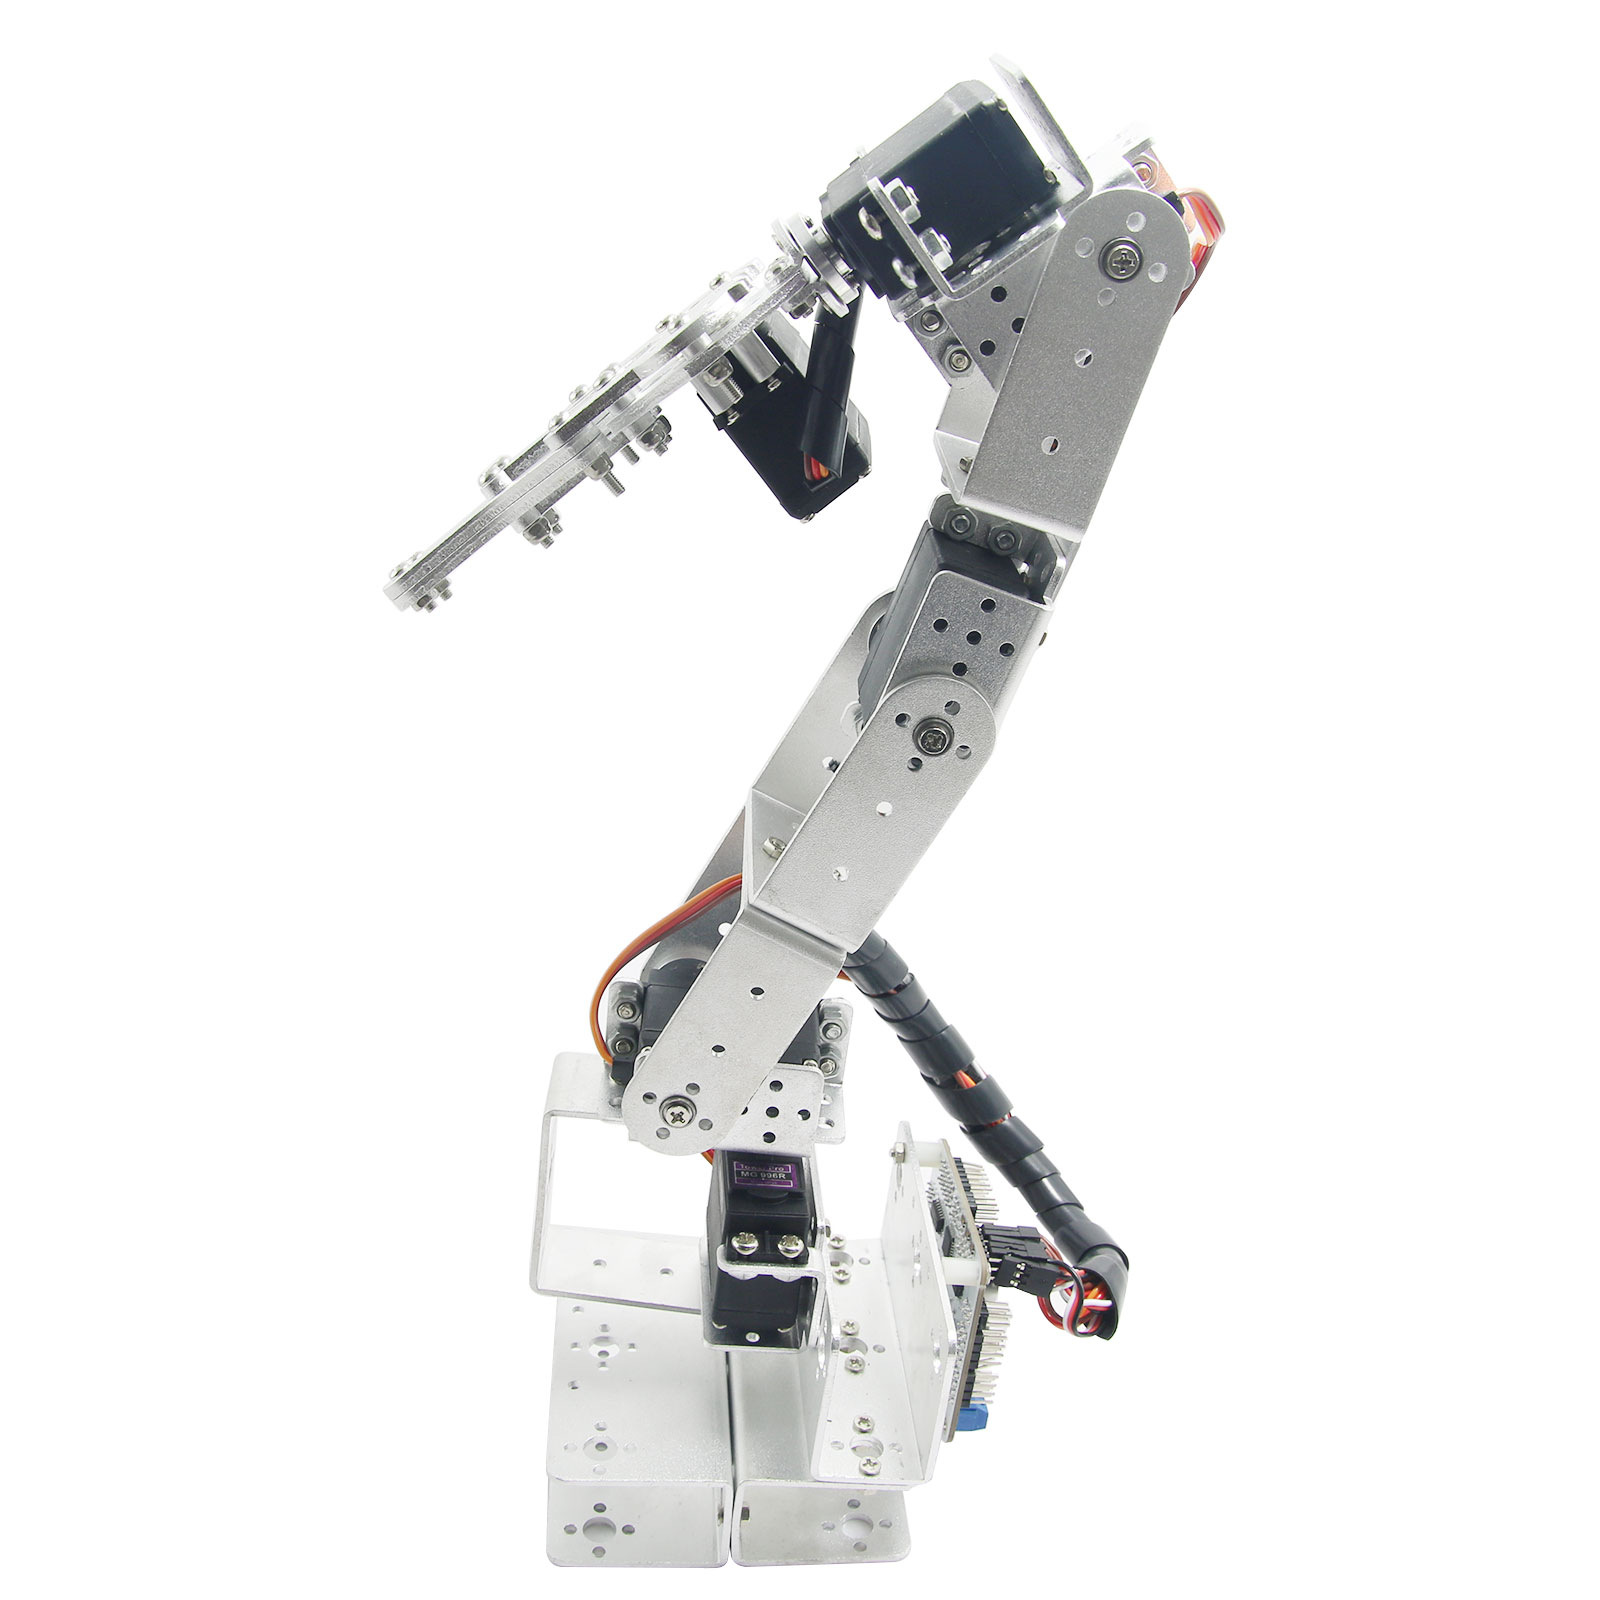 Aluminium Robot 6 DOF Arm Clamp Claw Mount Kit Mechanical Robotic Arm for Arduino Compatible 6dof robotic aluminium robot arm clamp claw